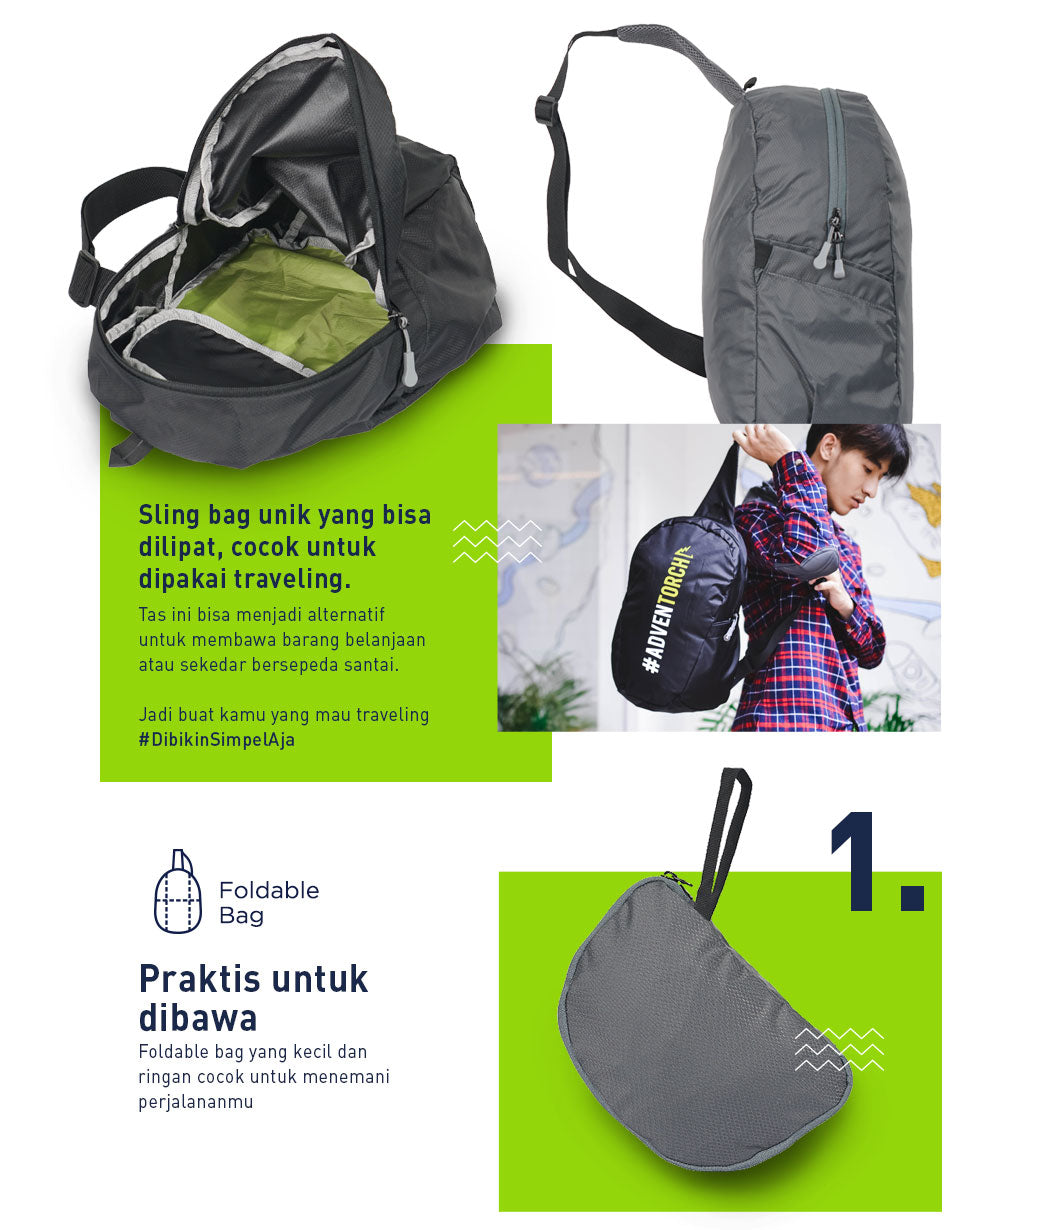 Fortaleza Foldable Bag